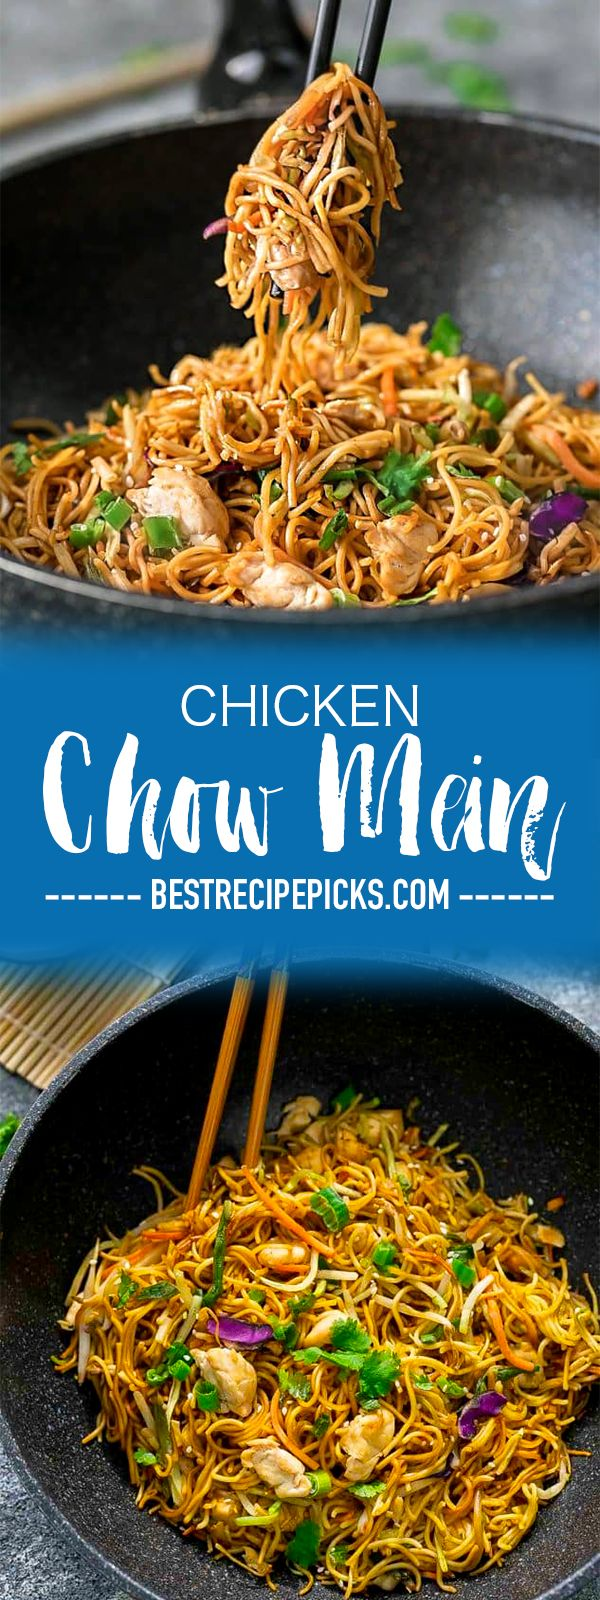 Chicken Chow Mein Noodles is the perfect easy ONE PAN meal for busy weeknights. Best of all, this authentic Chinese restaurant quality recipe comes together in 20 minutes so you can skip the takeout! #asian #noodles #chowmein